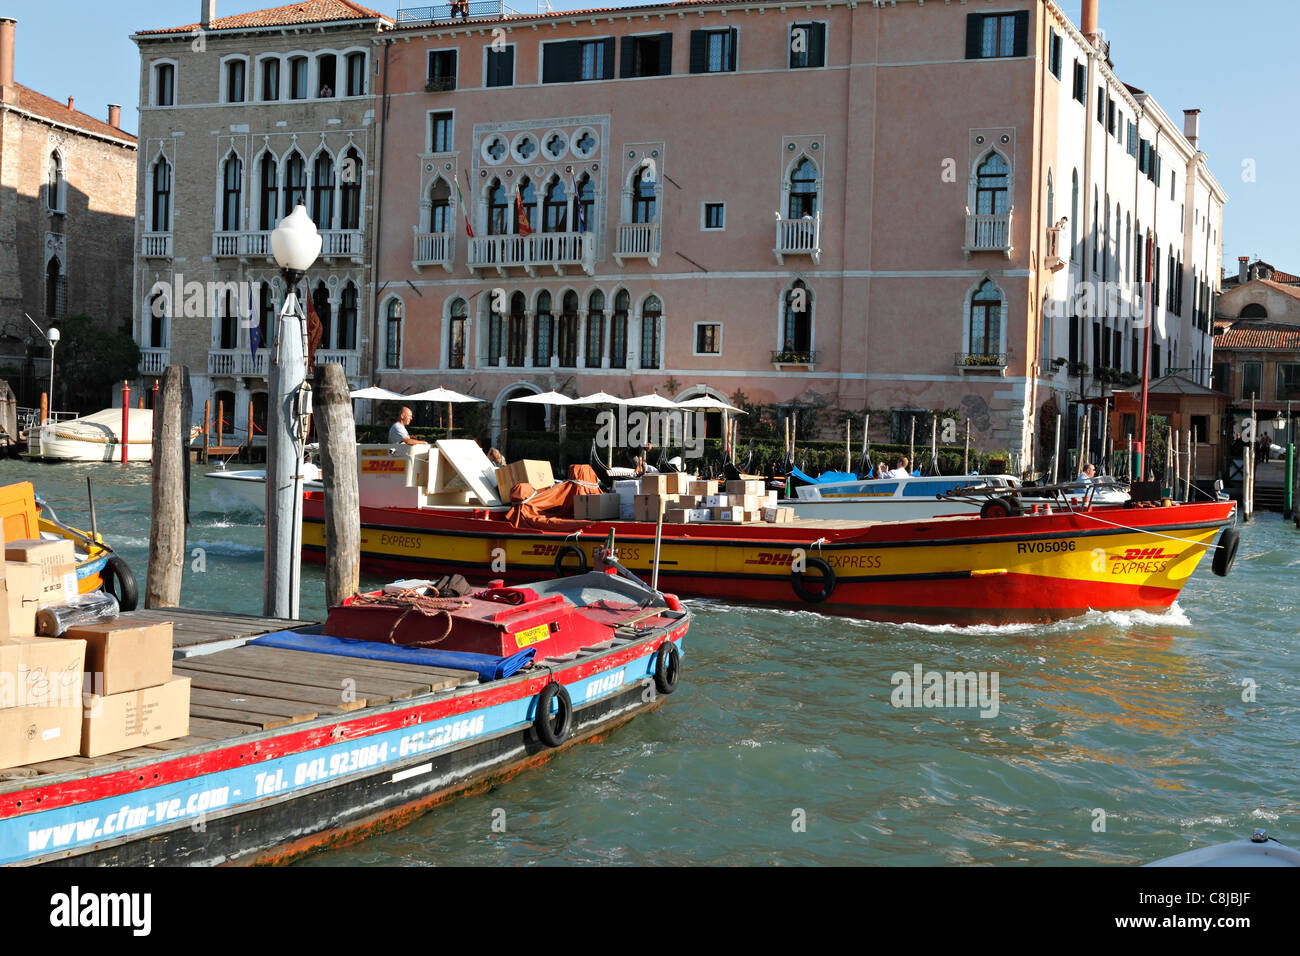 dhl express postboot am canal grande venedig italien stockfoto bild 39742263 alamy. Black Bedroom Furniture Sets. Home Design Ideas